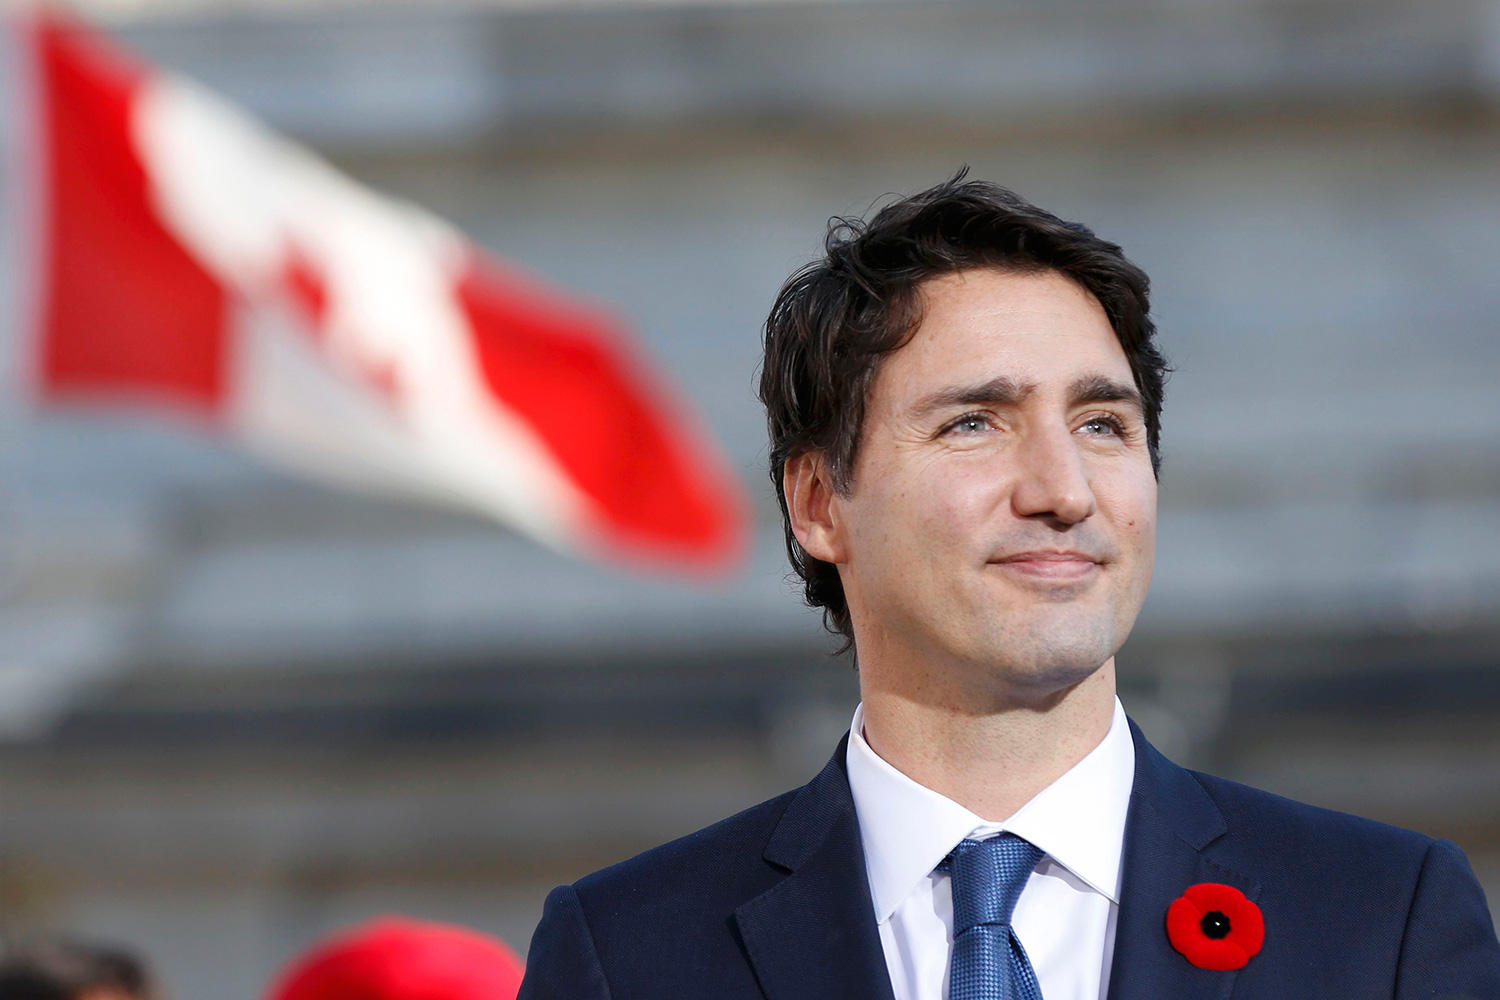 Canada's Trudeau, in election fight, says he needs voter support to stand up to Trump